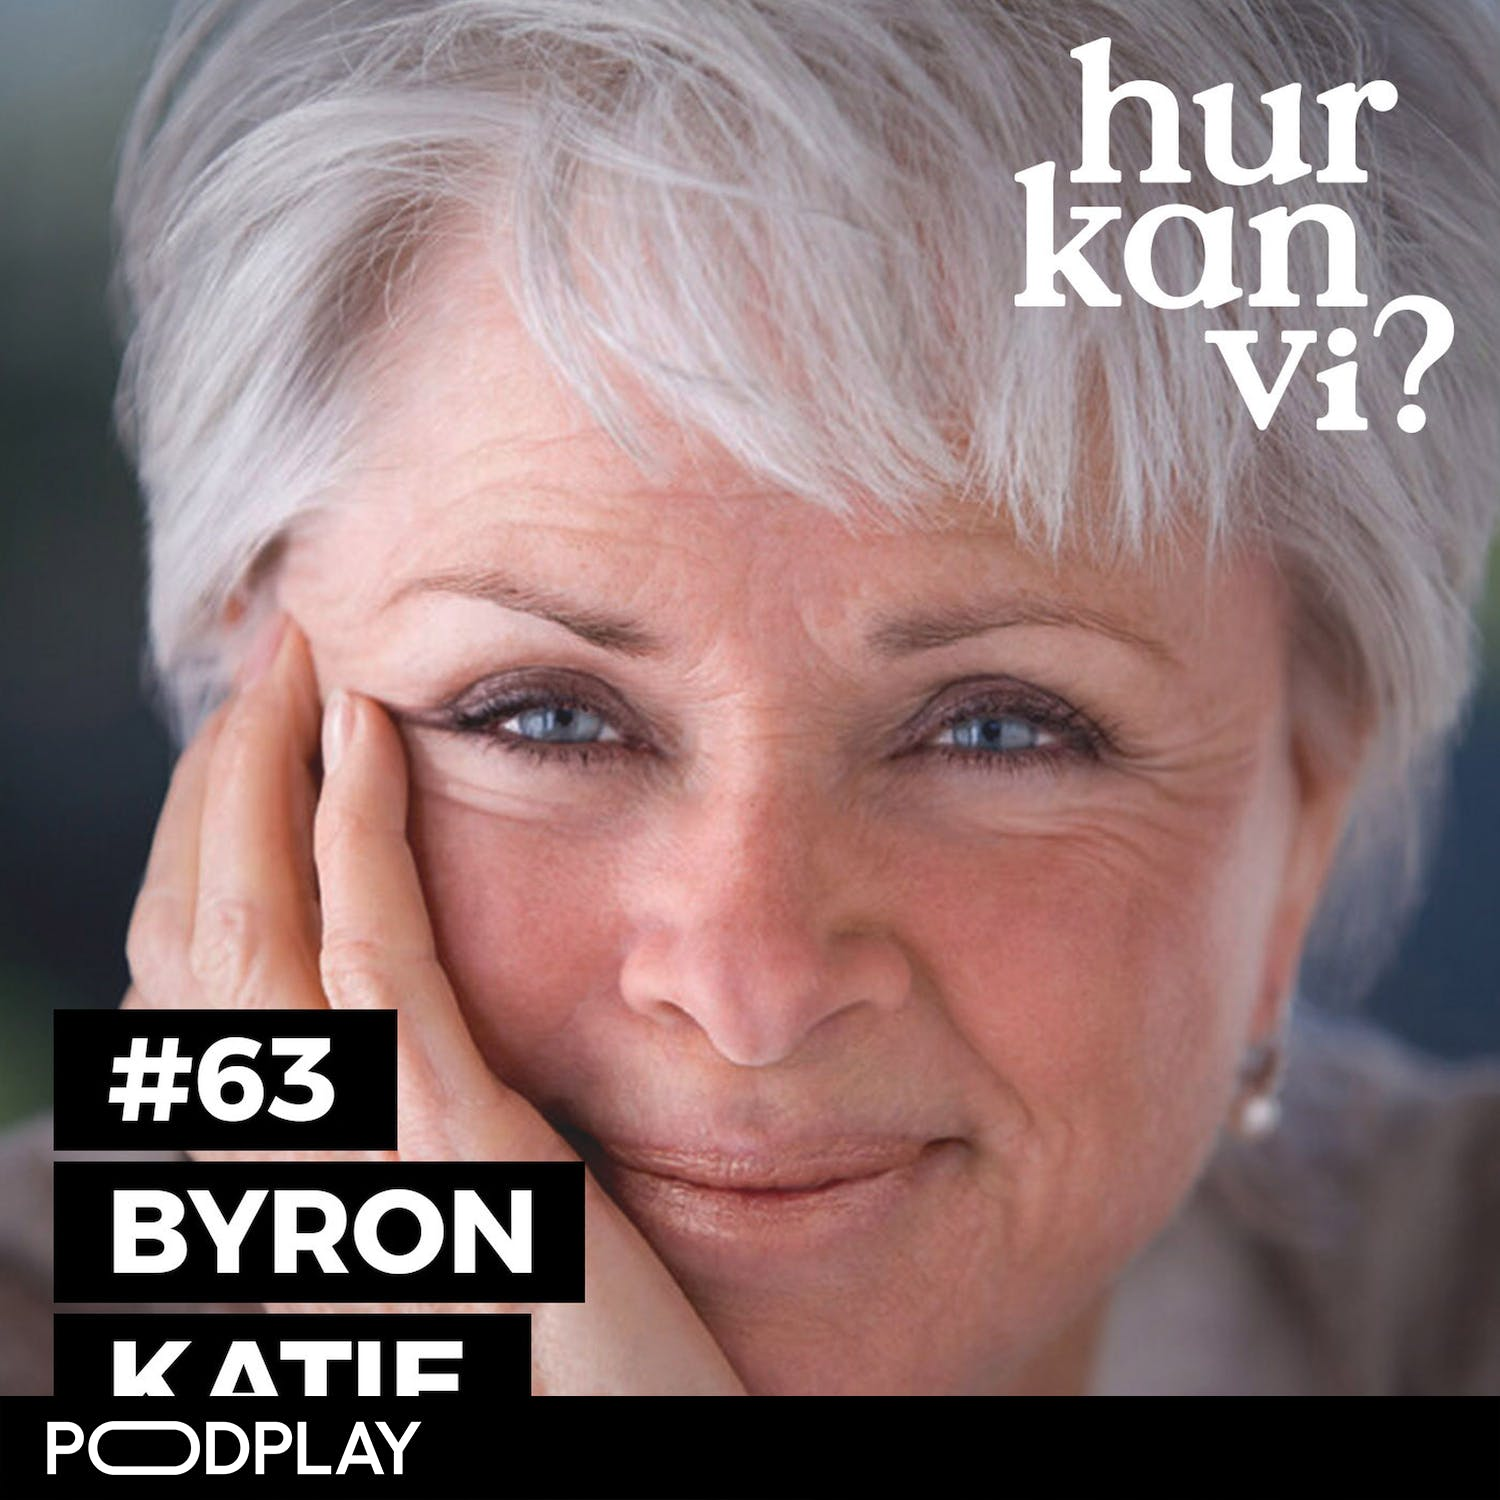 #63 Byron Katie – Every word out of my mouth was a lie